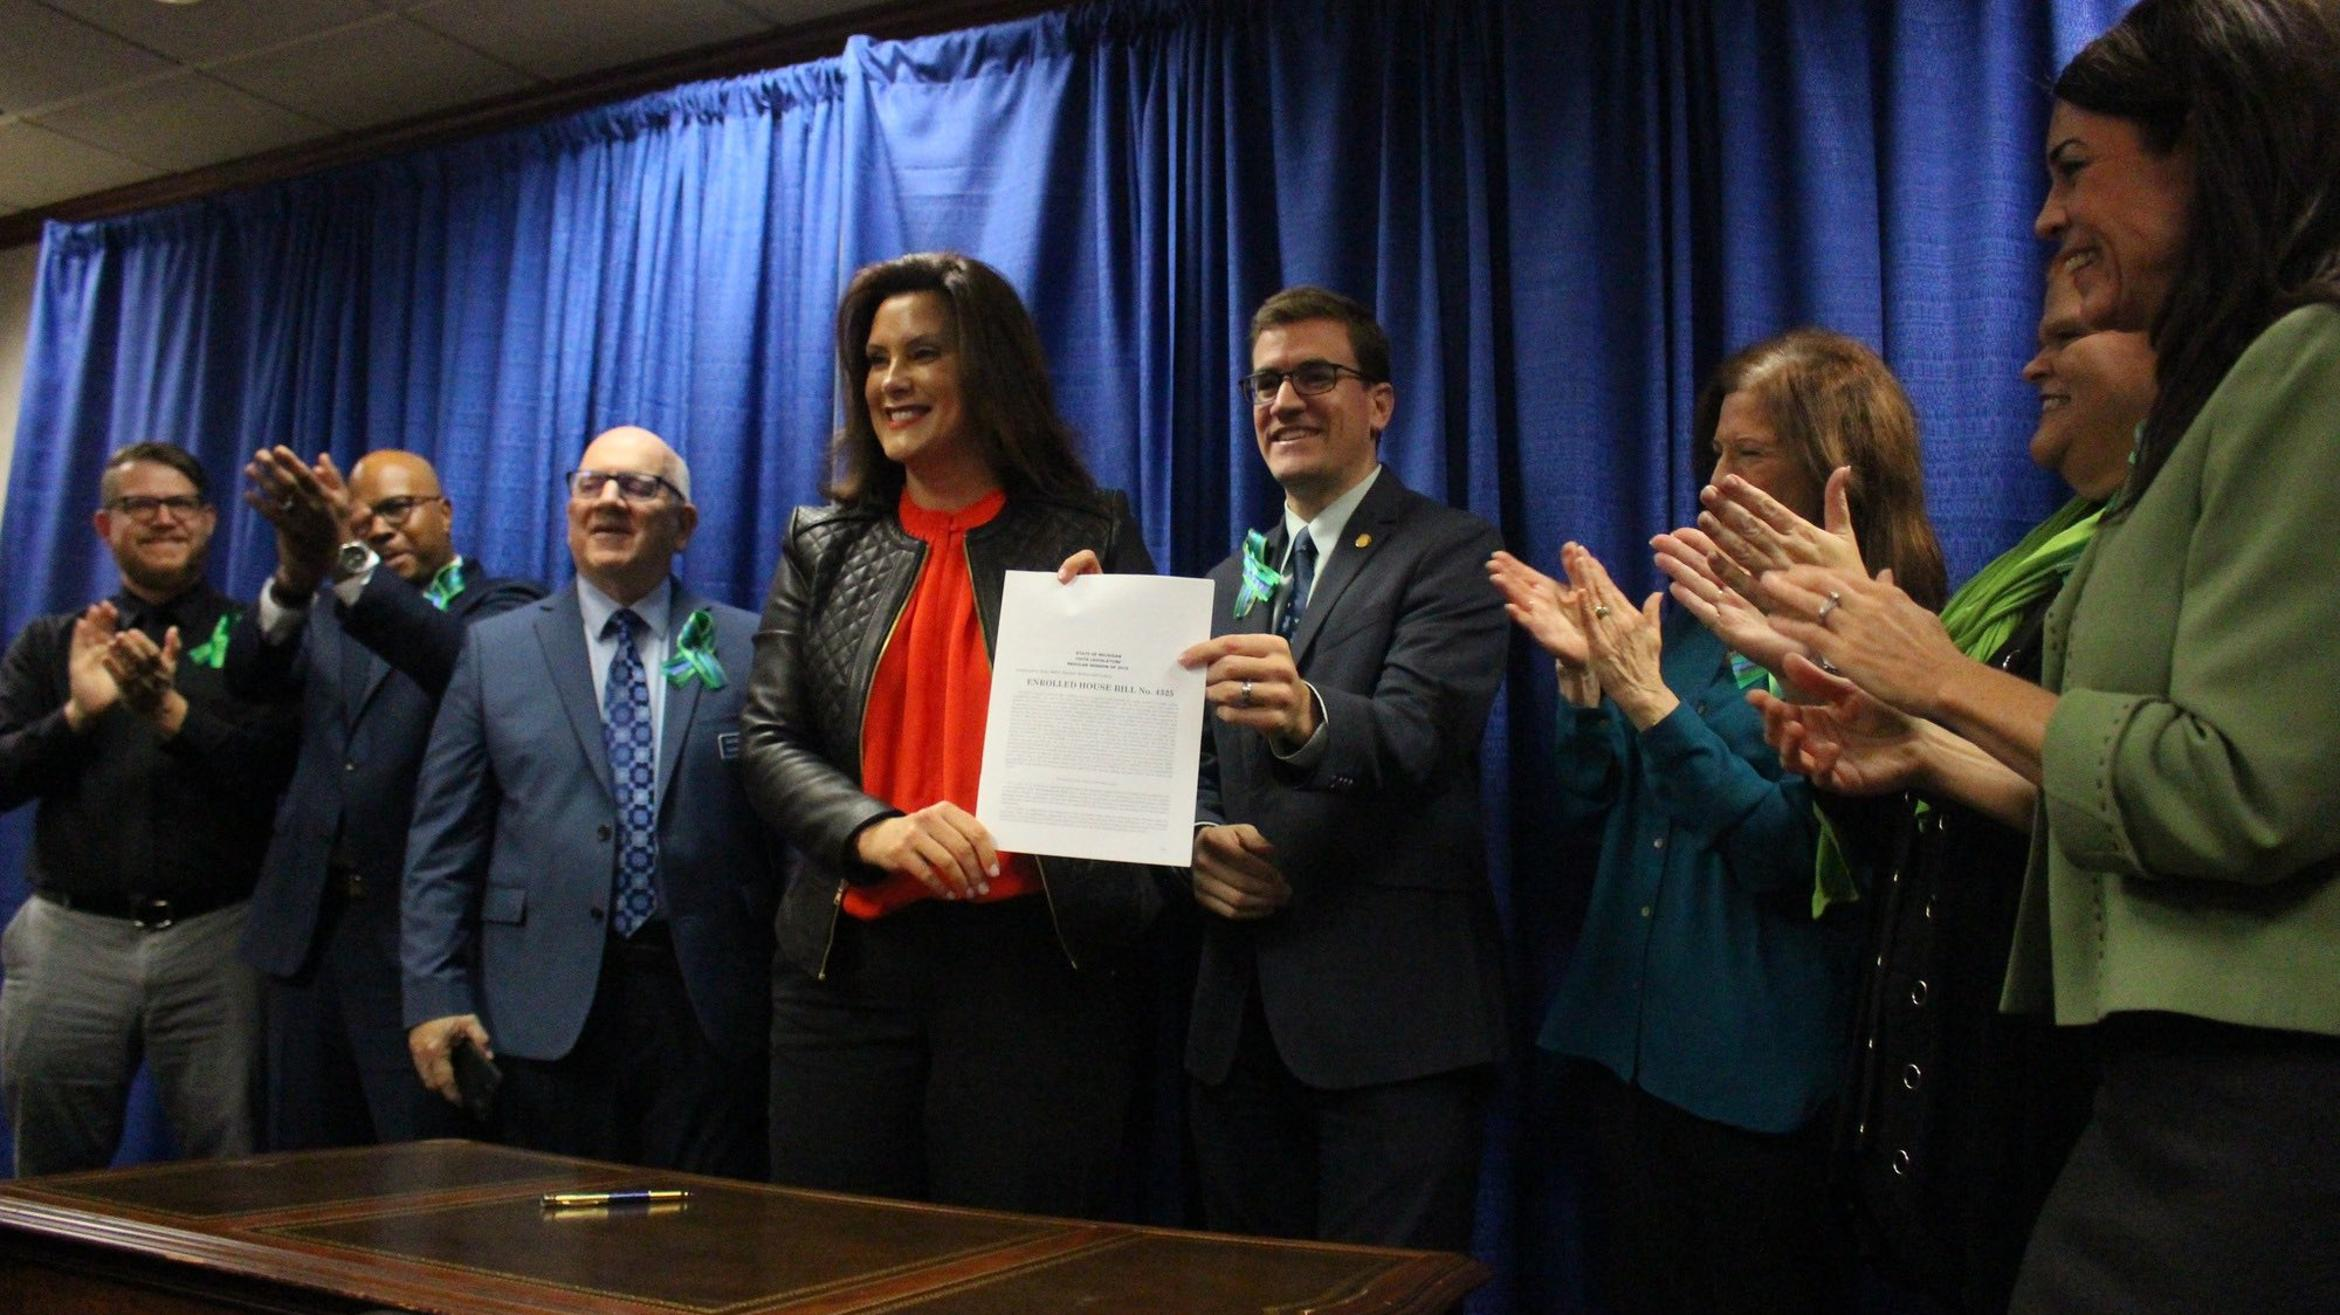 Gov. Whitmer and others holding signed bill, credit: Office of Governor Gretchen Whitmer